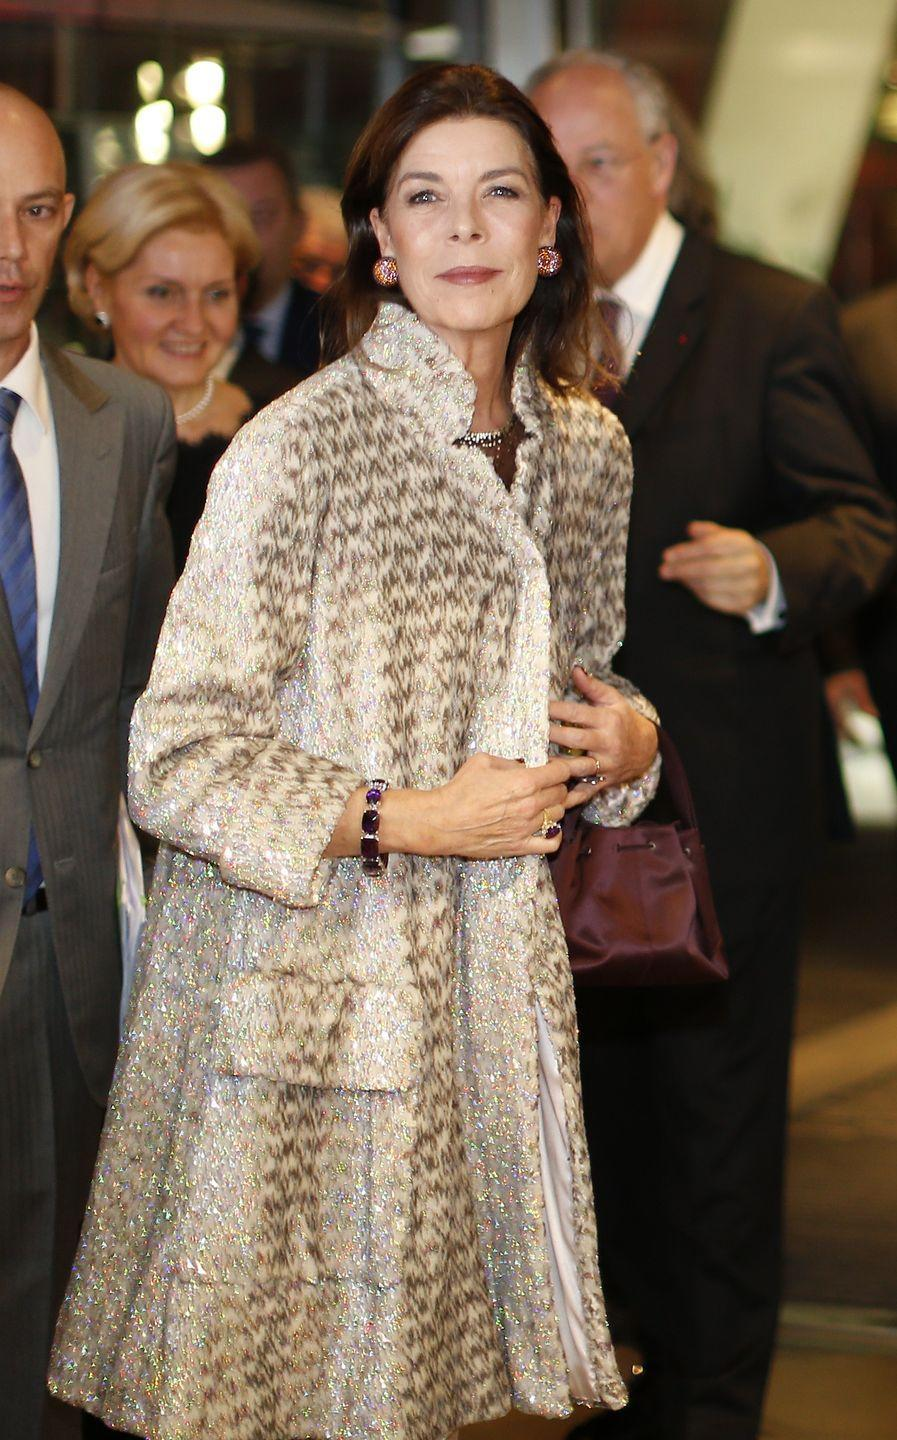 <p>For a Bolshoi Ballet performance in Monaco, Princess Caroline wore a shimmering fur coat and a suite of luxurious jewels.</p>